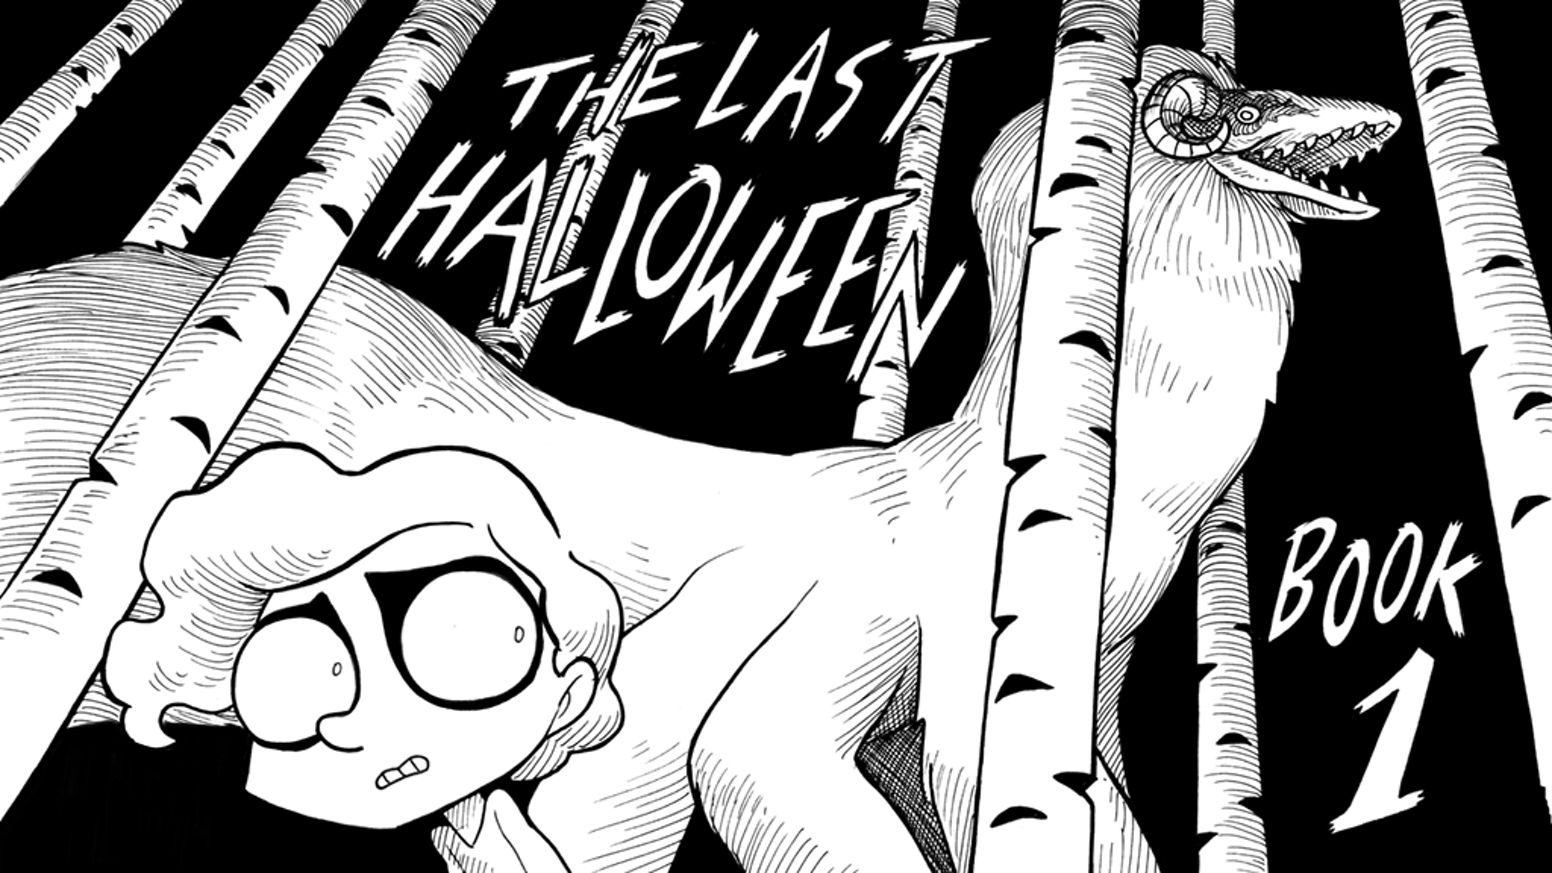 The Last Halloween: Book 1 by Abby Howard — Kickstarter